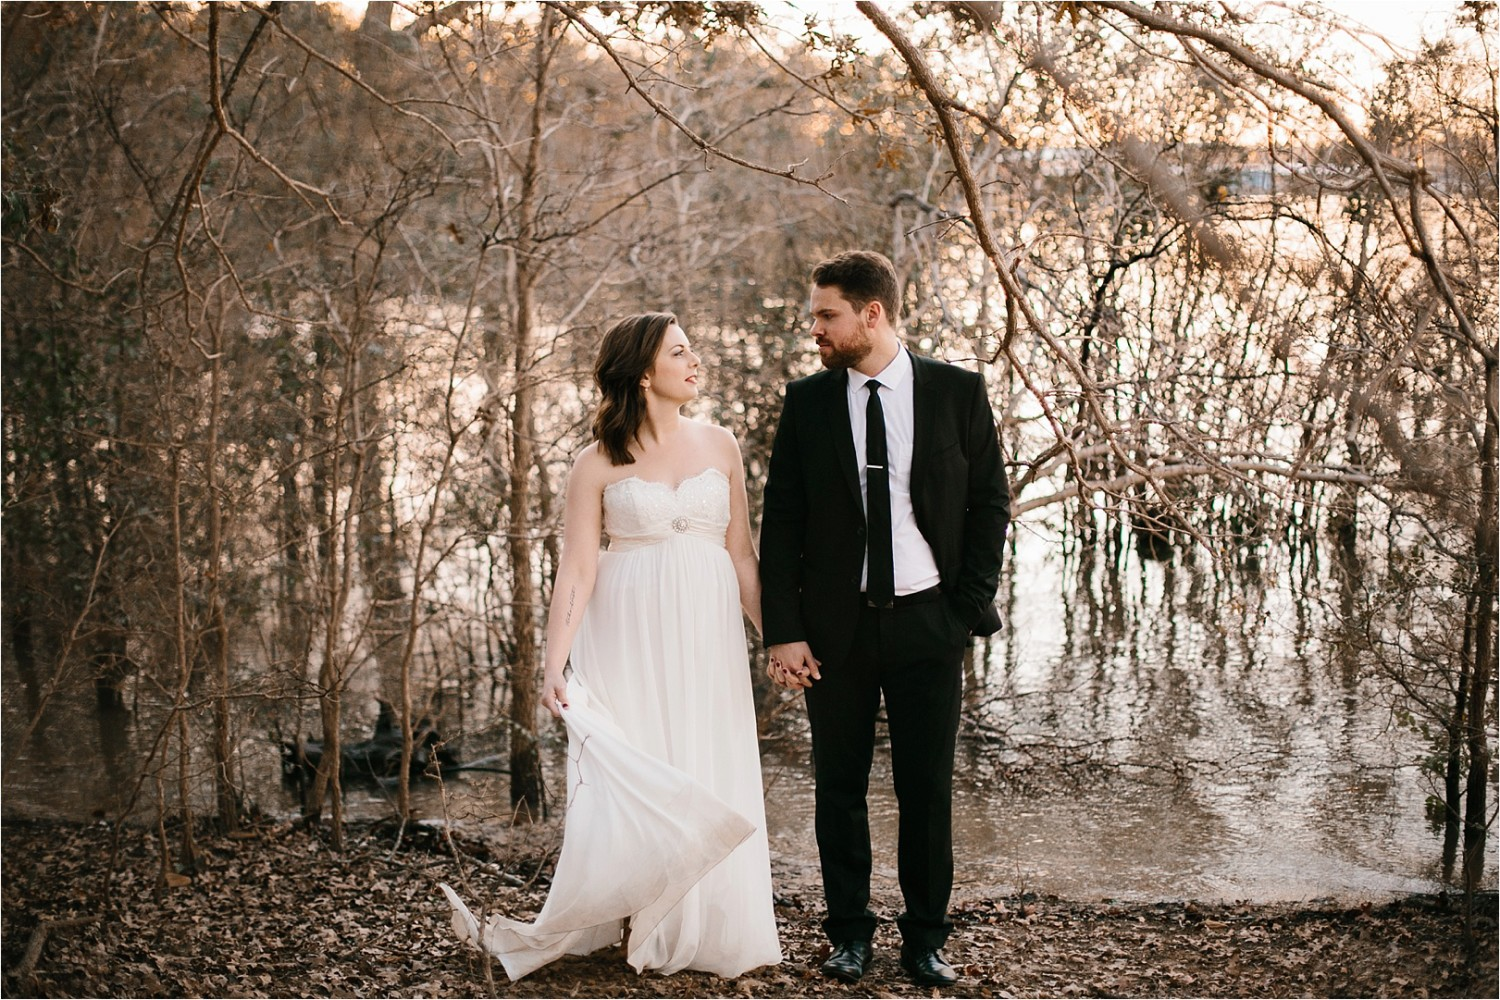 Cory + Casey || a 5 year anniversary session